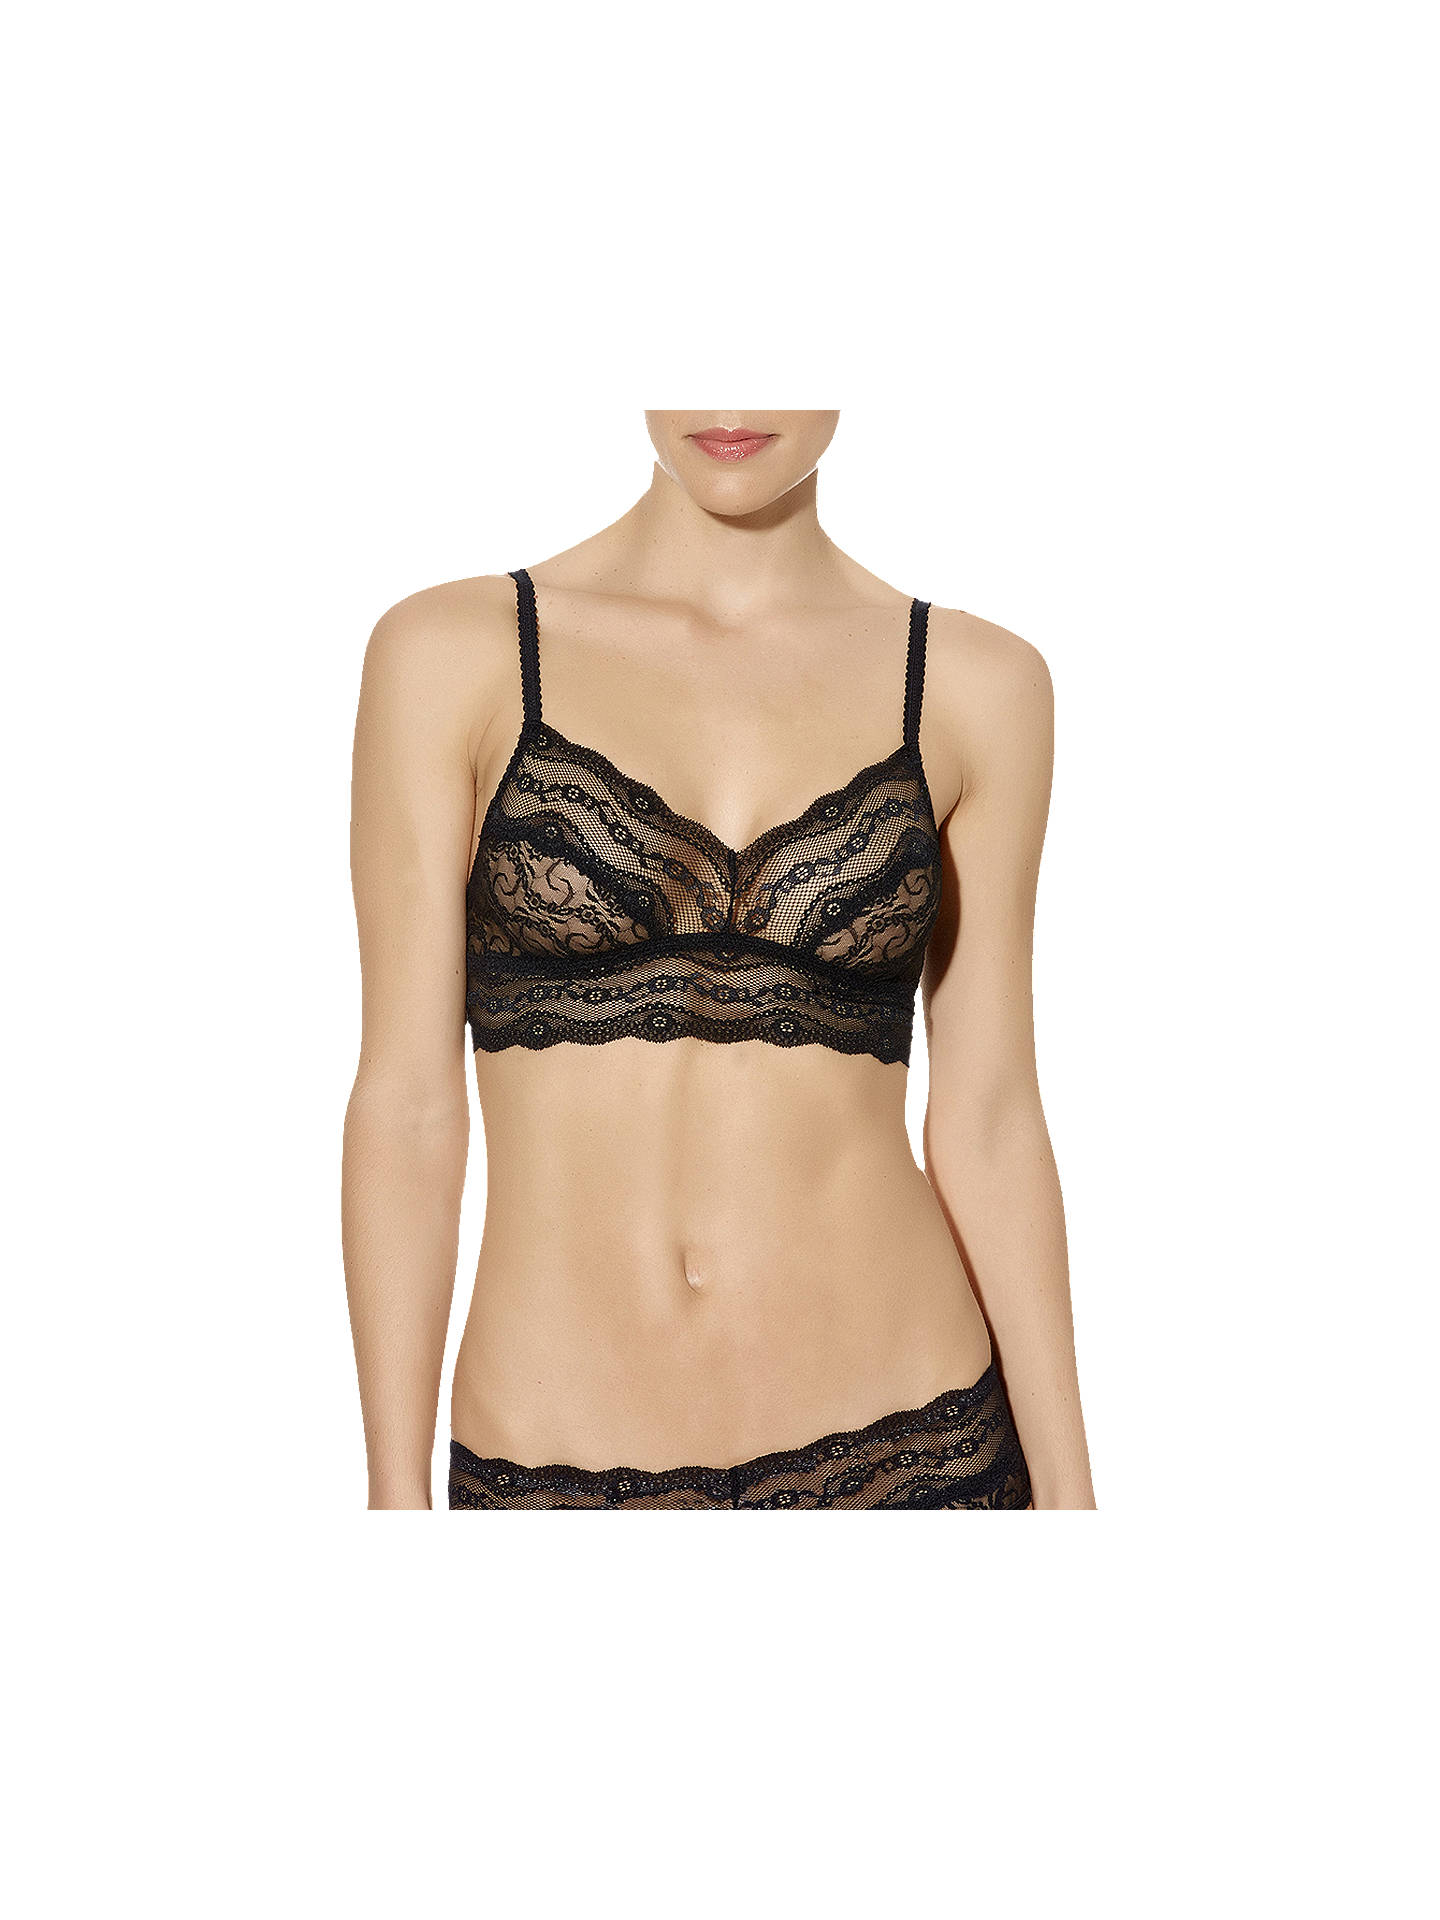 Buy b.tempt'd Lace Kiss Bralette, Night, S Online at johnlewis.com